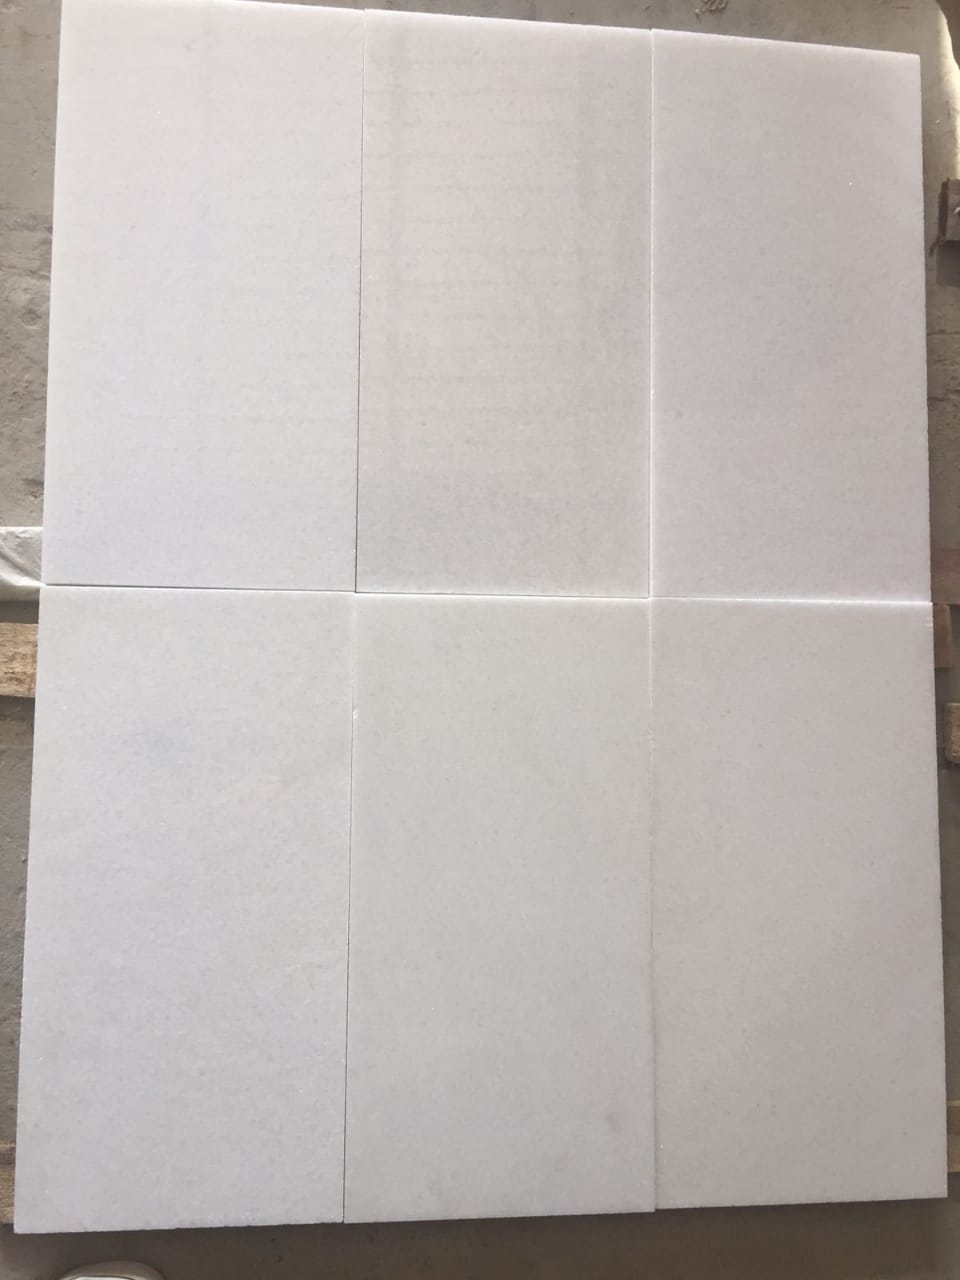 Vietnam White Marble Tiles White Polished Marble Tiles